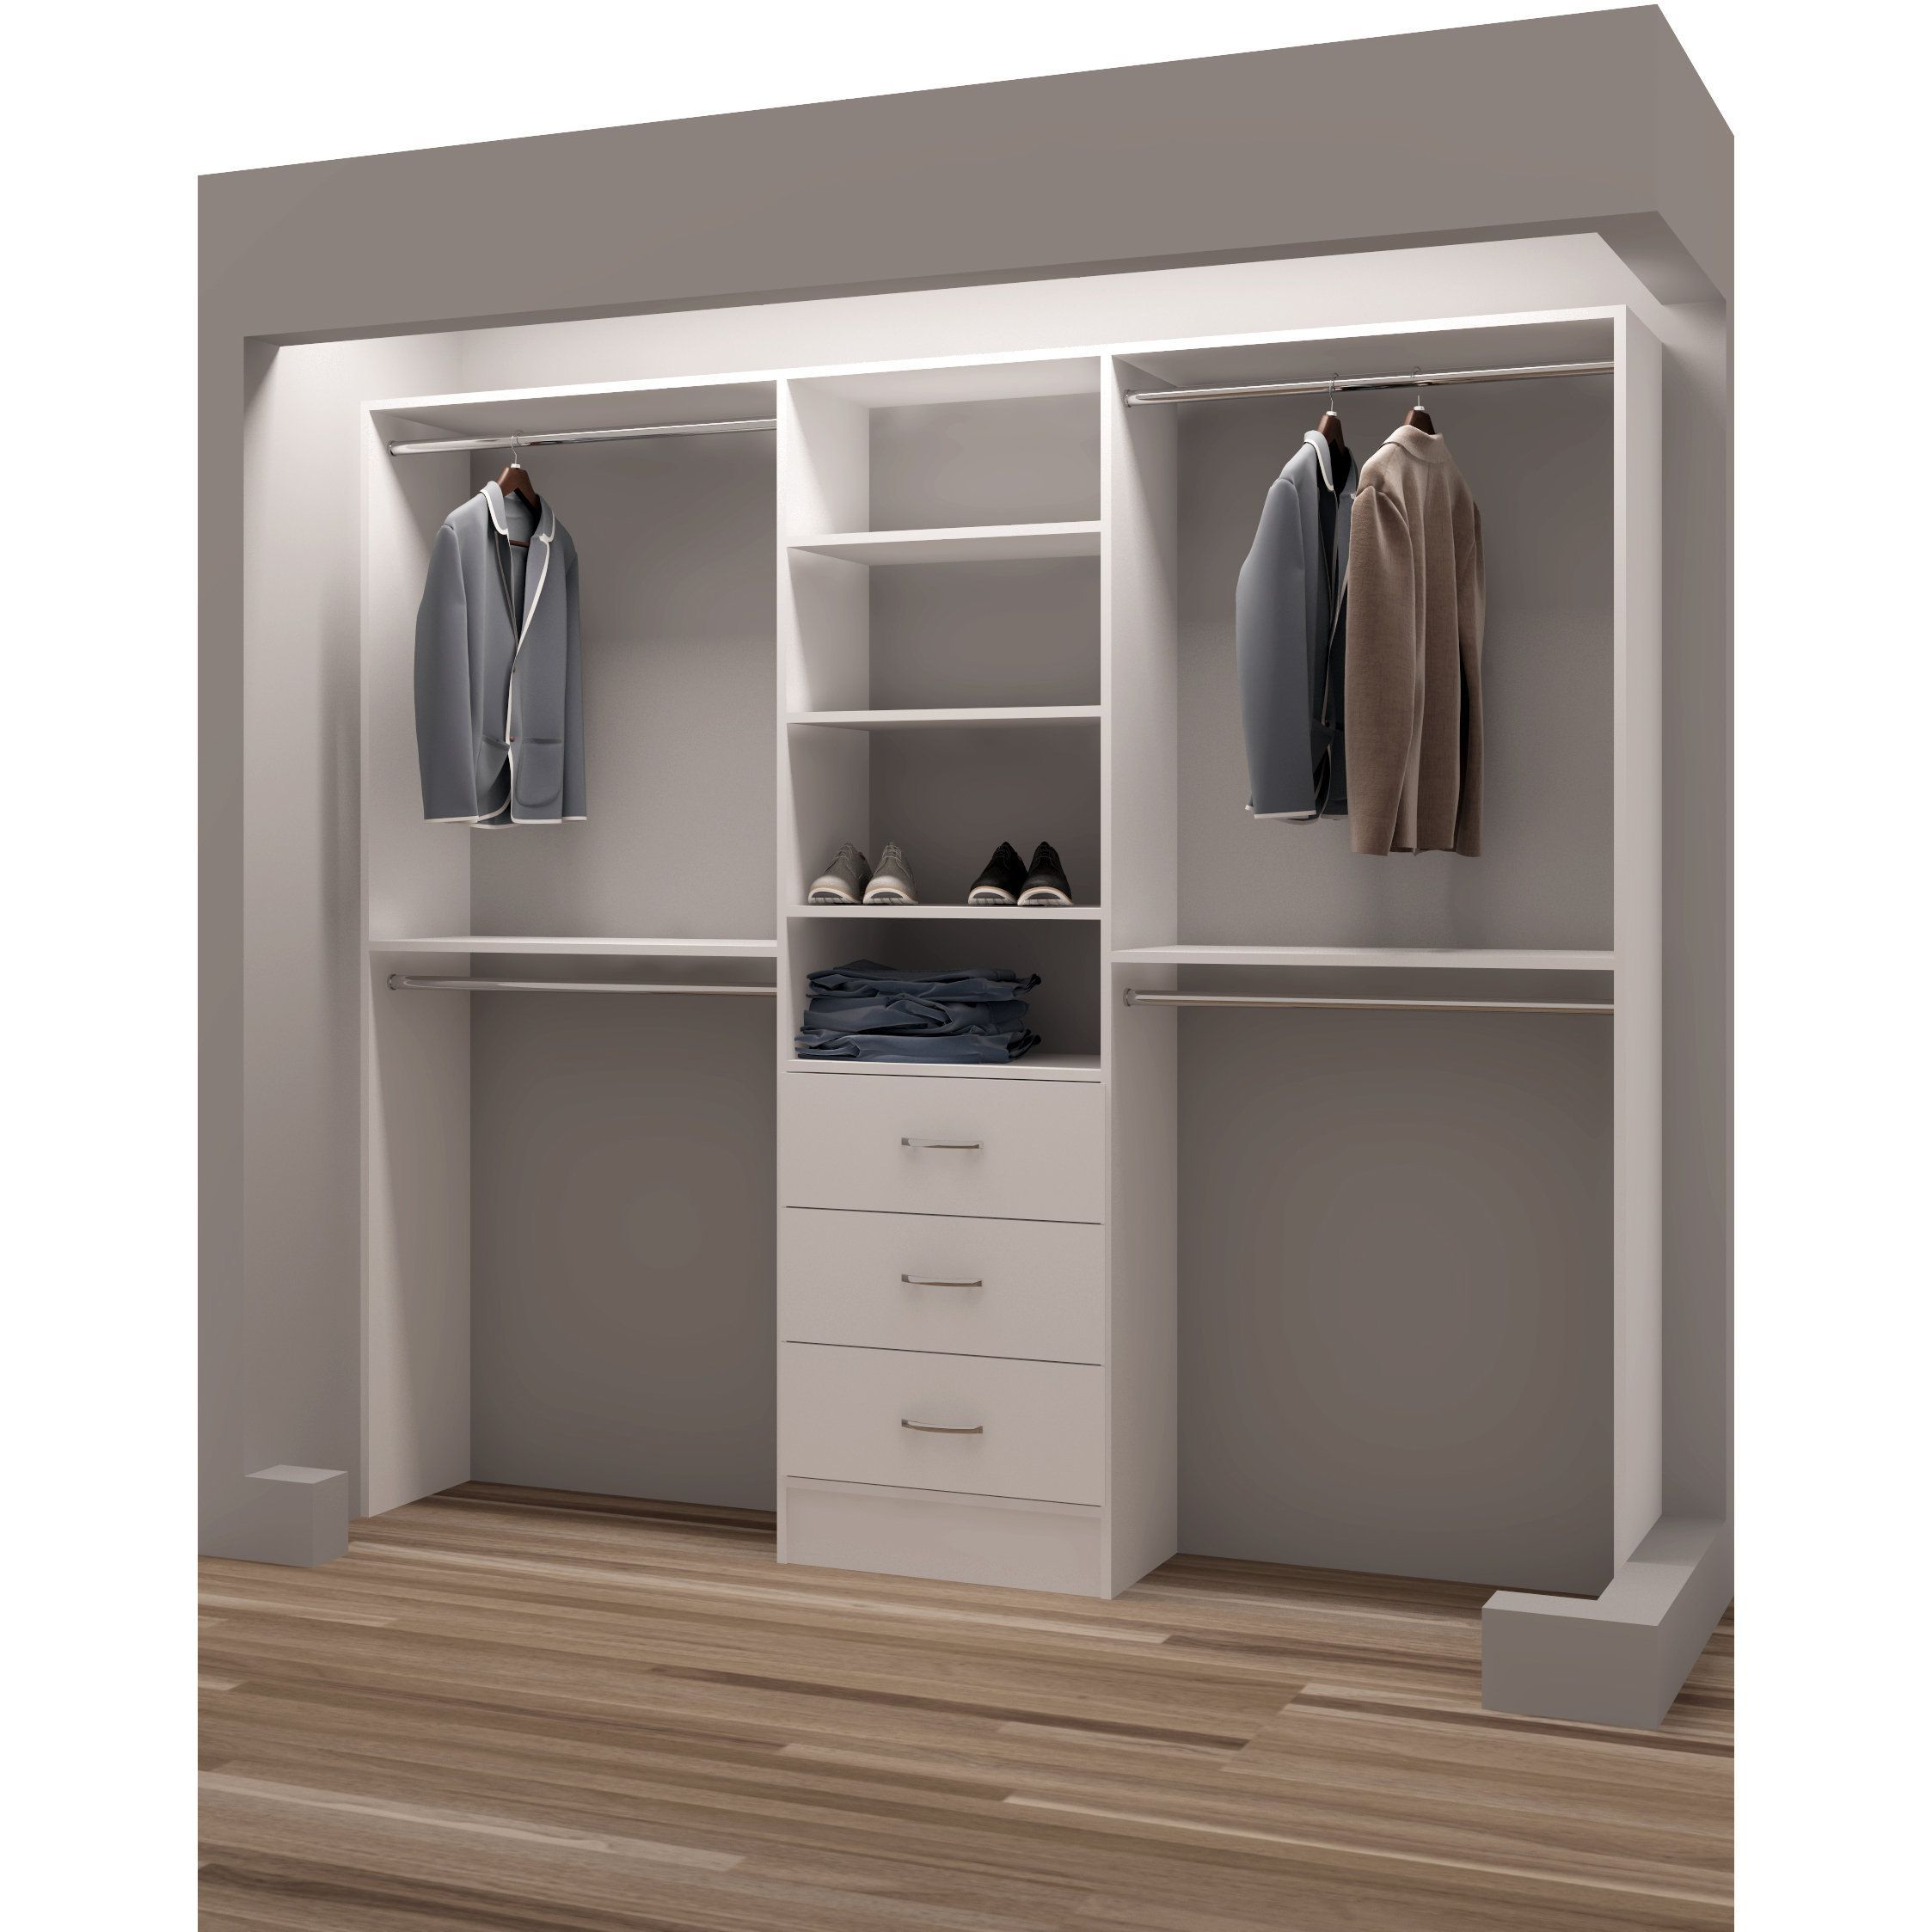 in is one customizable bags drawers living collection pin closetstorage a closet and actually with shoes organized place stewart martha jewelry possibility our